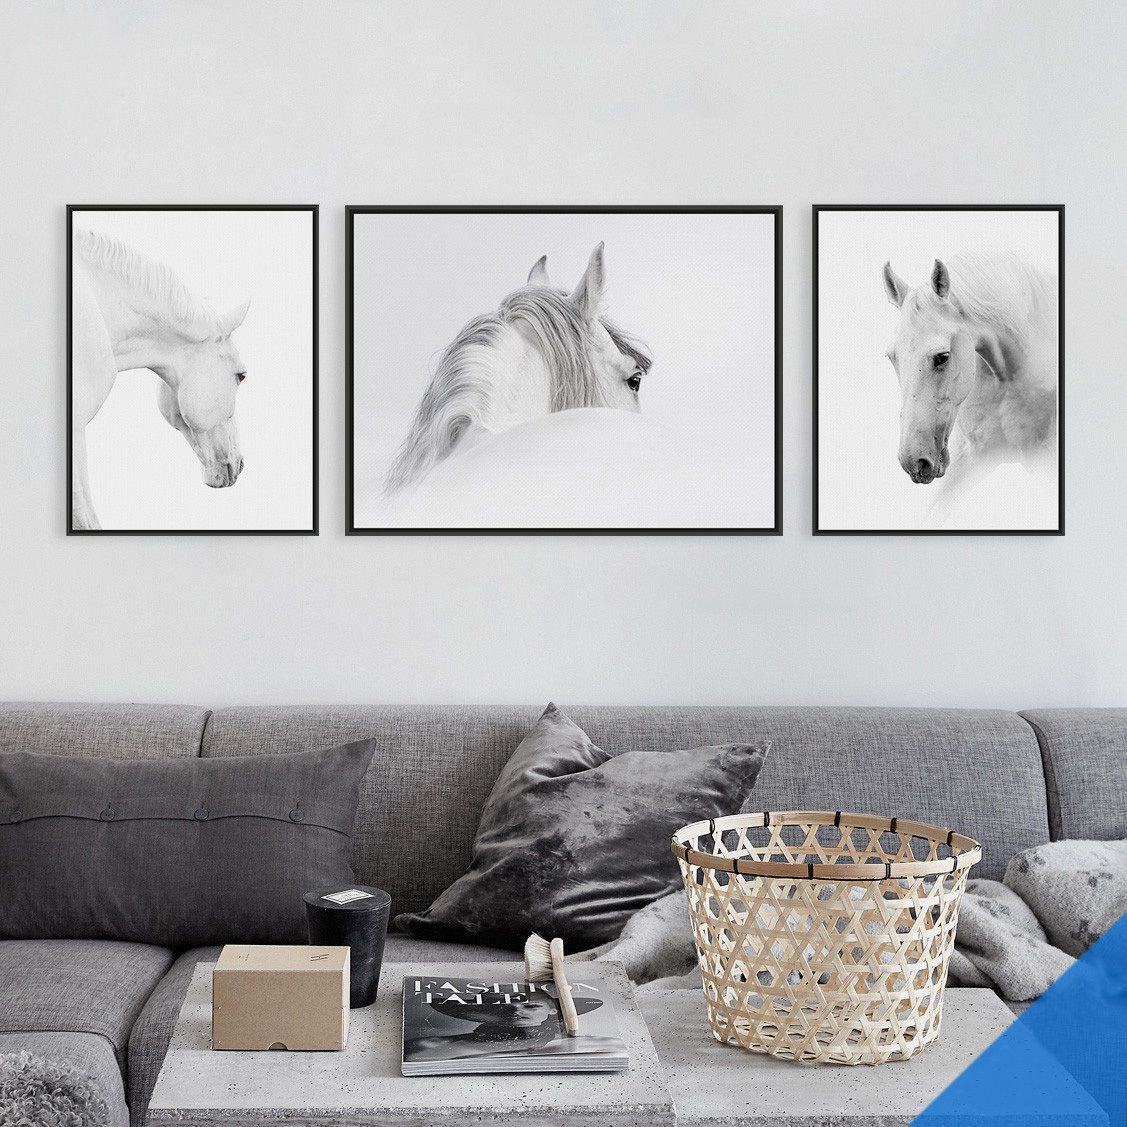 Gift animal white horse home cafe hotel wall decor hanging poster